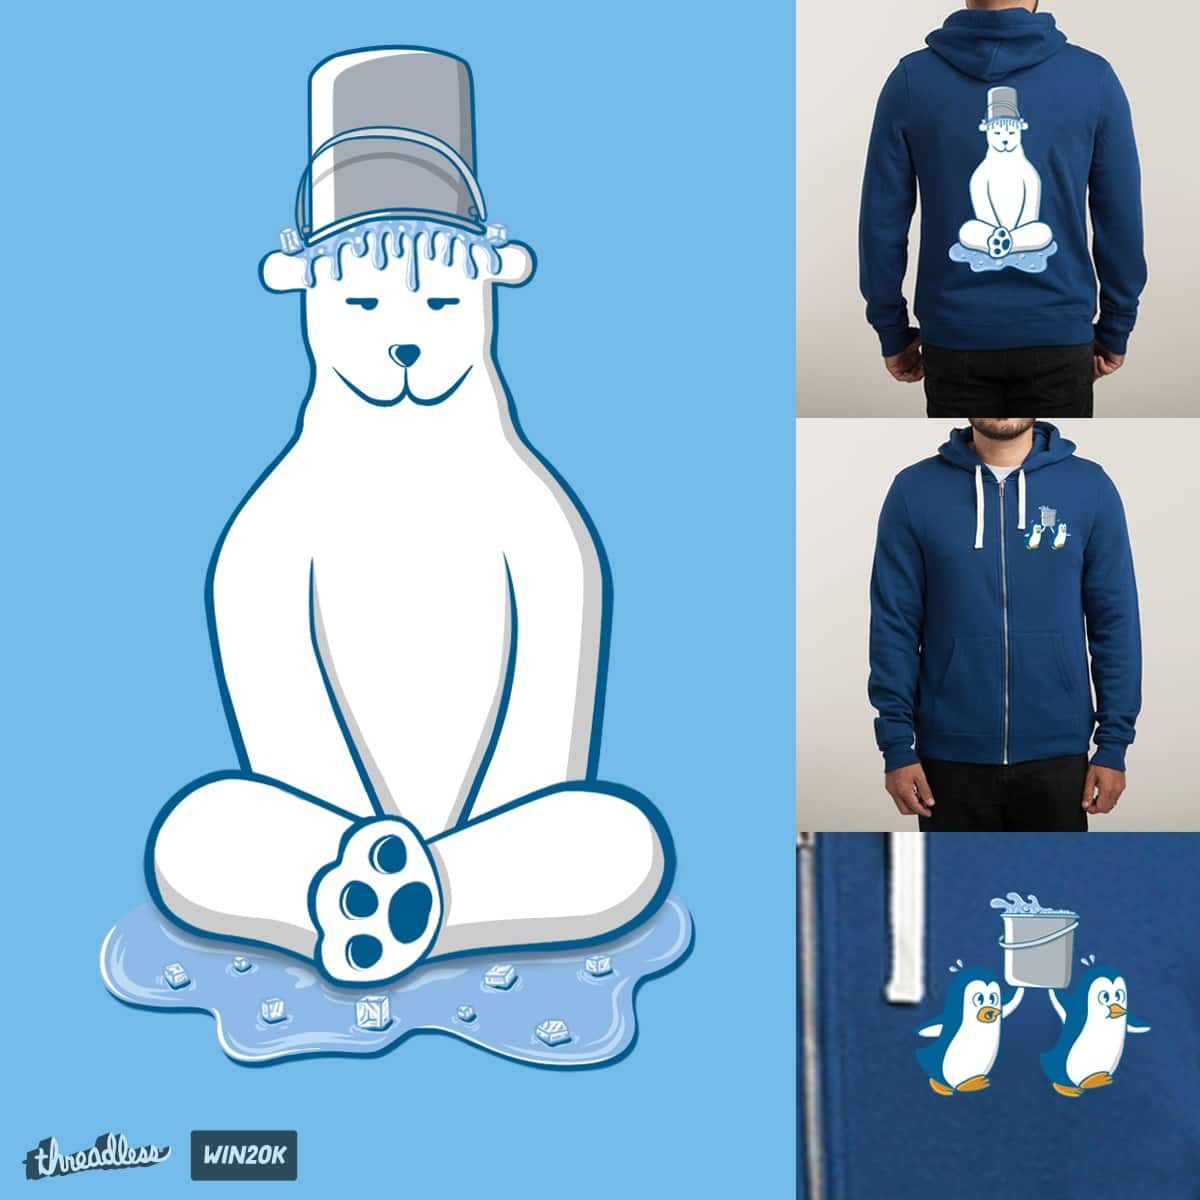 IT'S FREEZING... by farlyfs on Threadless